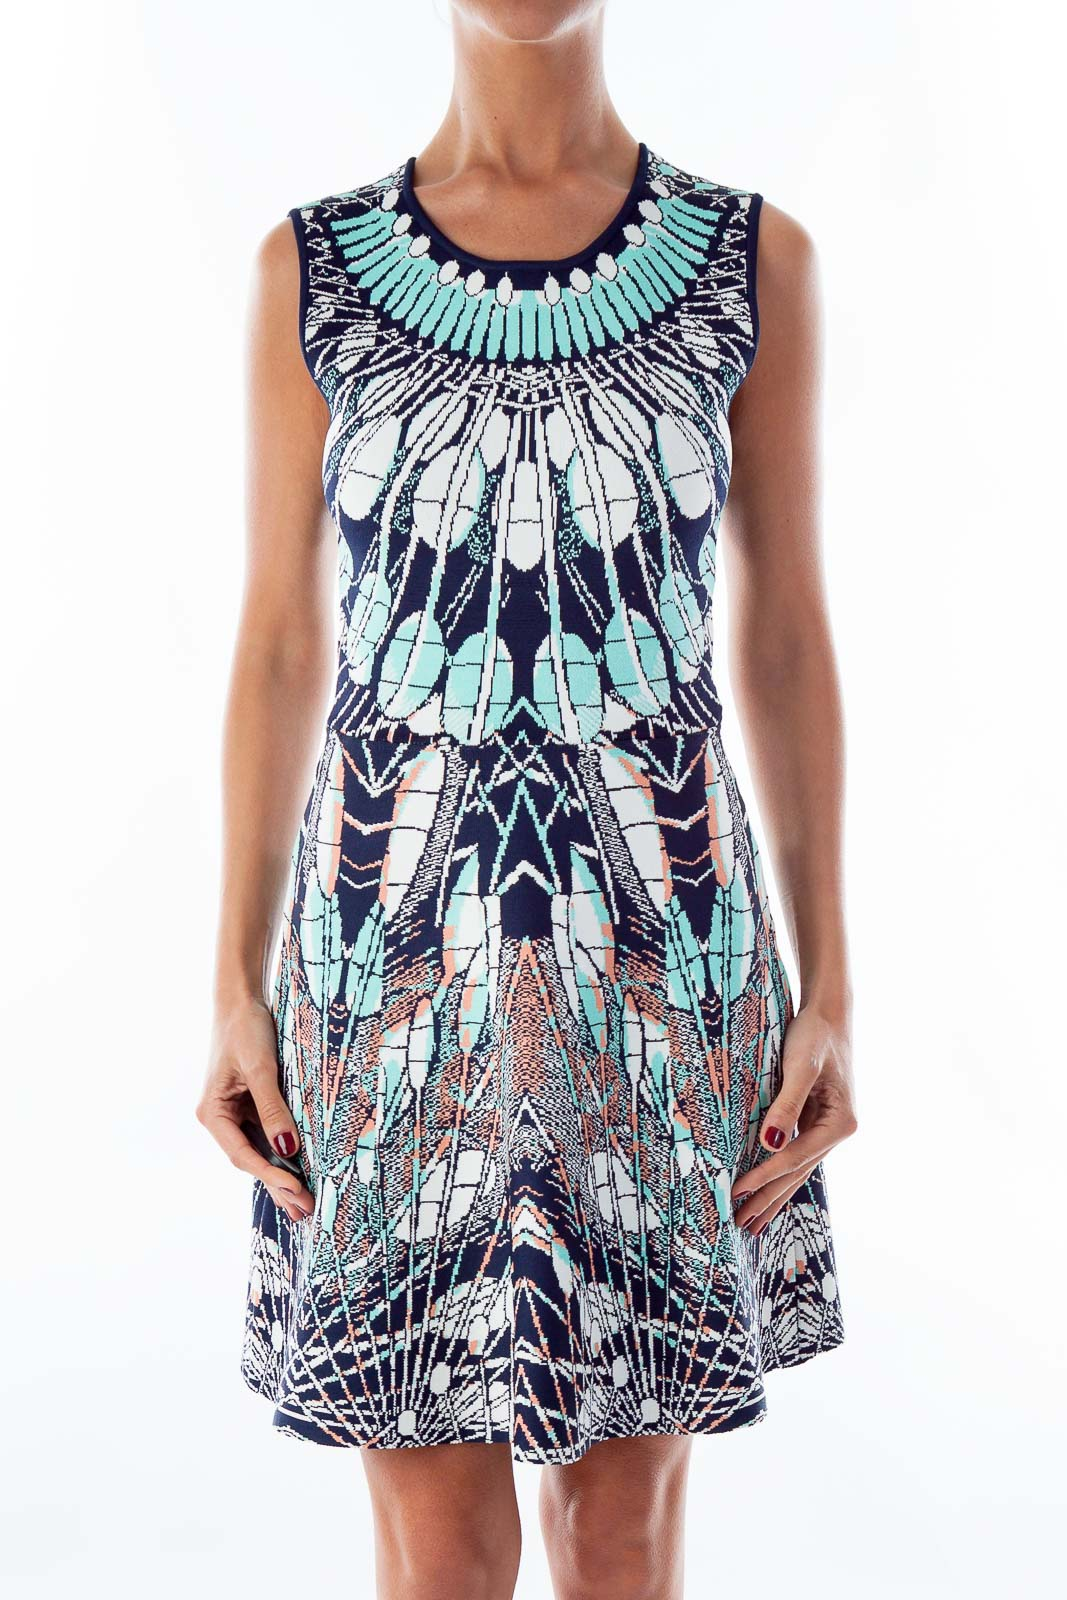 Turquoise & Navy A-Line Dress